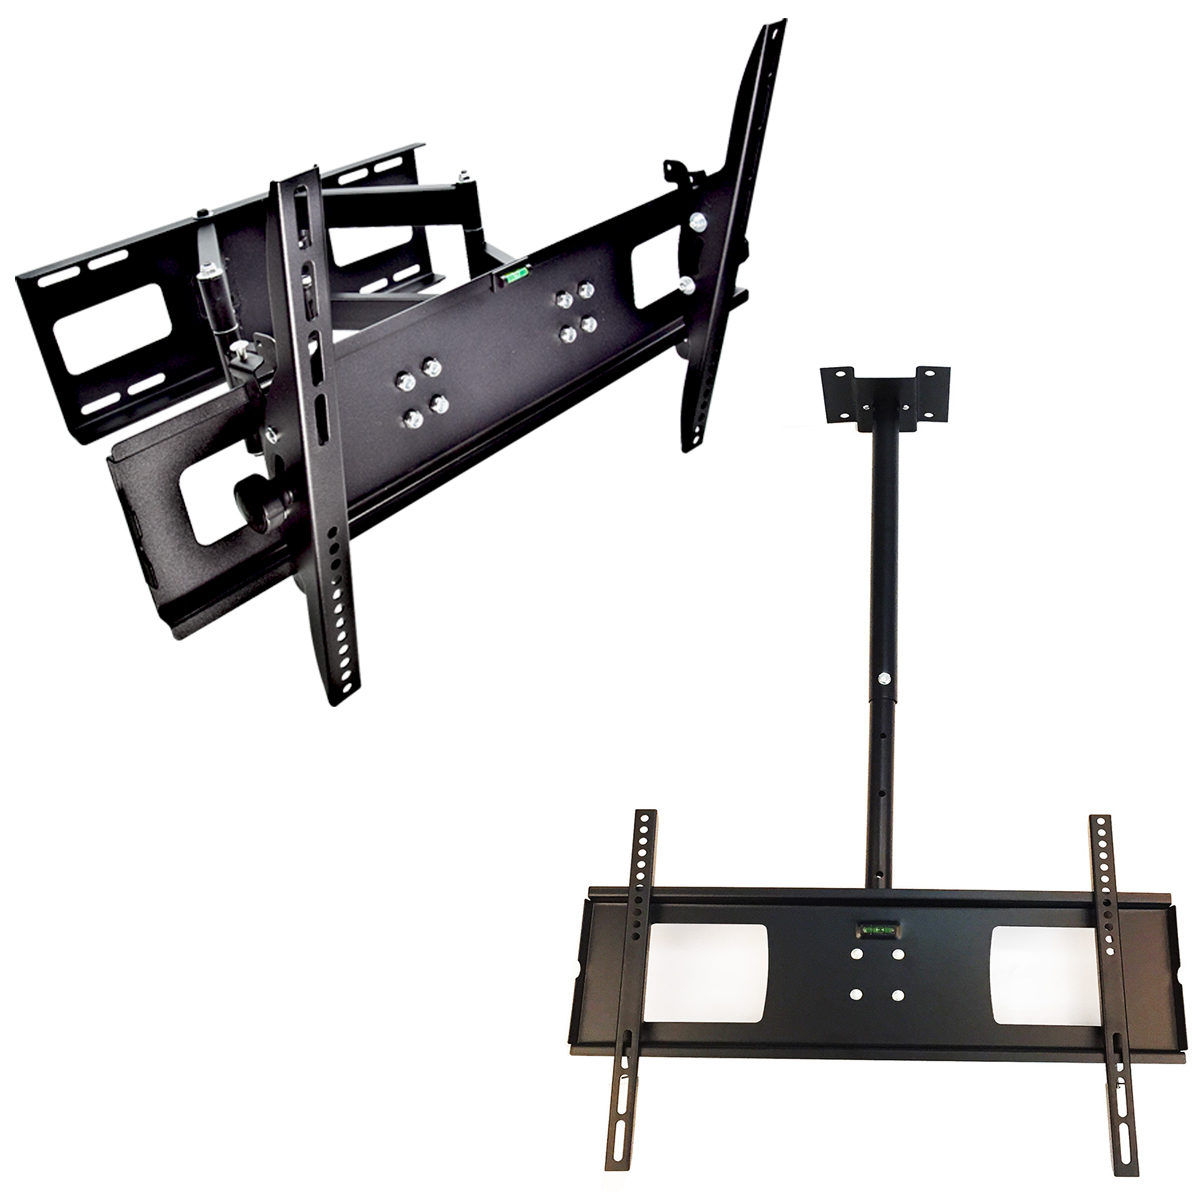 "Lcd Ceiling Mount: TV Wall Mount Ceiling + Swivel 32 37 42 46 50 52 60"" LCD"